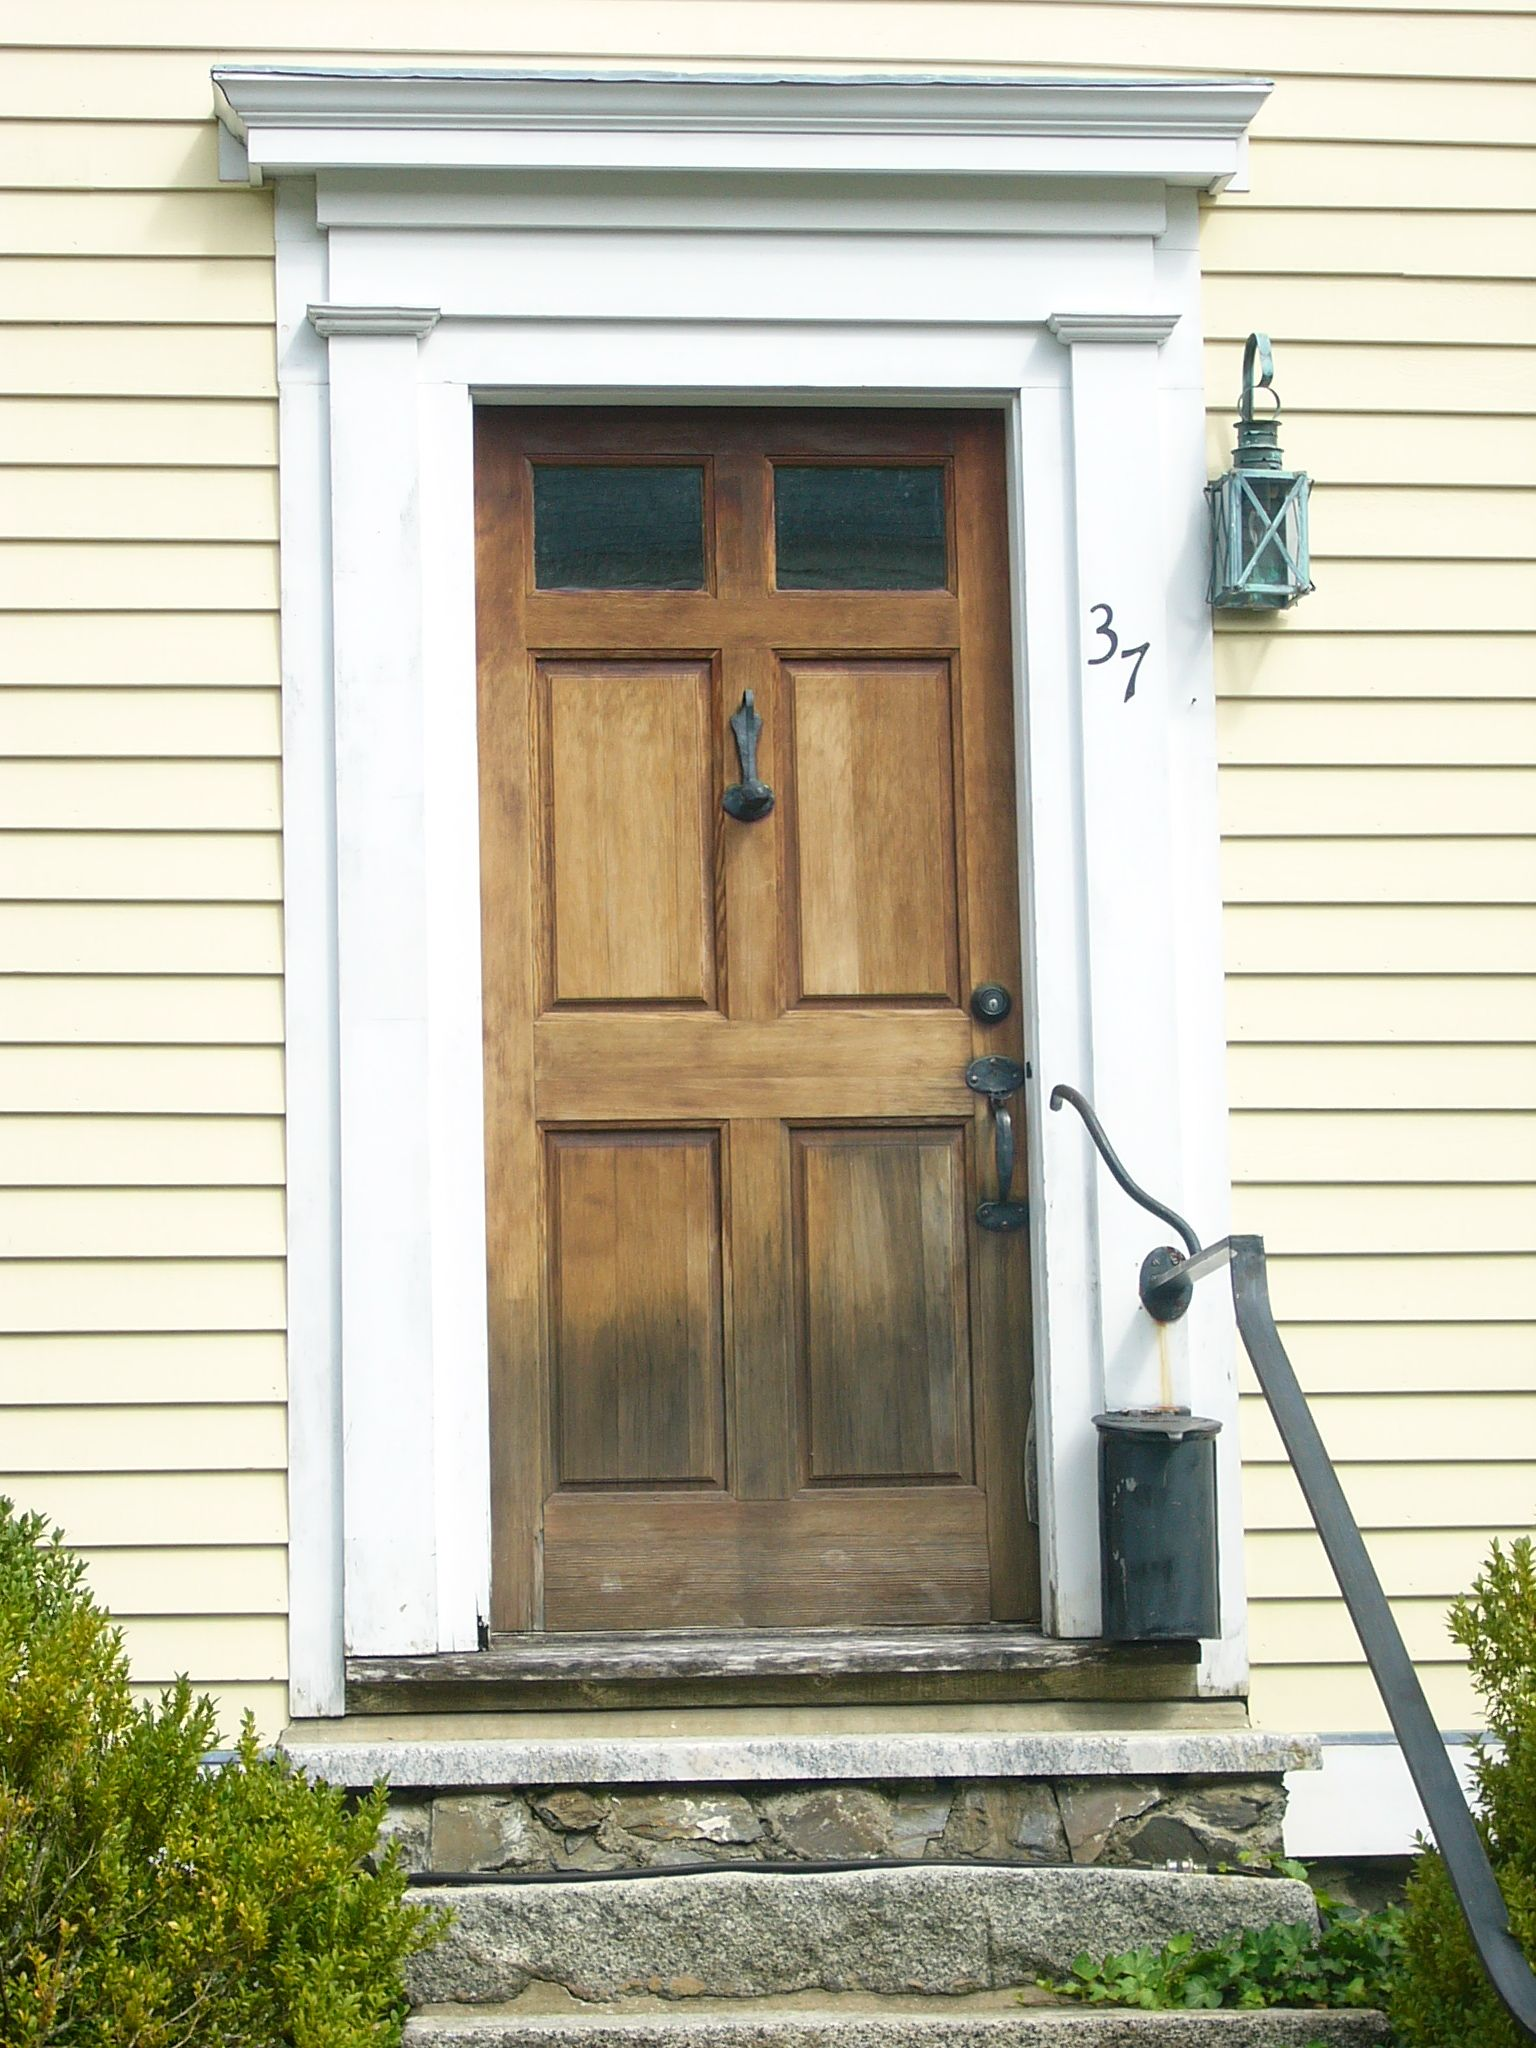 Portsmouth Doors & Pin by Michael Kelso dba Maine Carpenter on Doors of Portsmouth NH ... pezcame.com